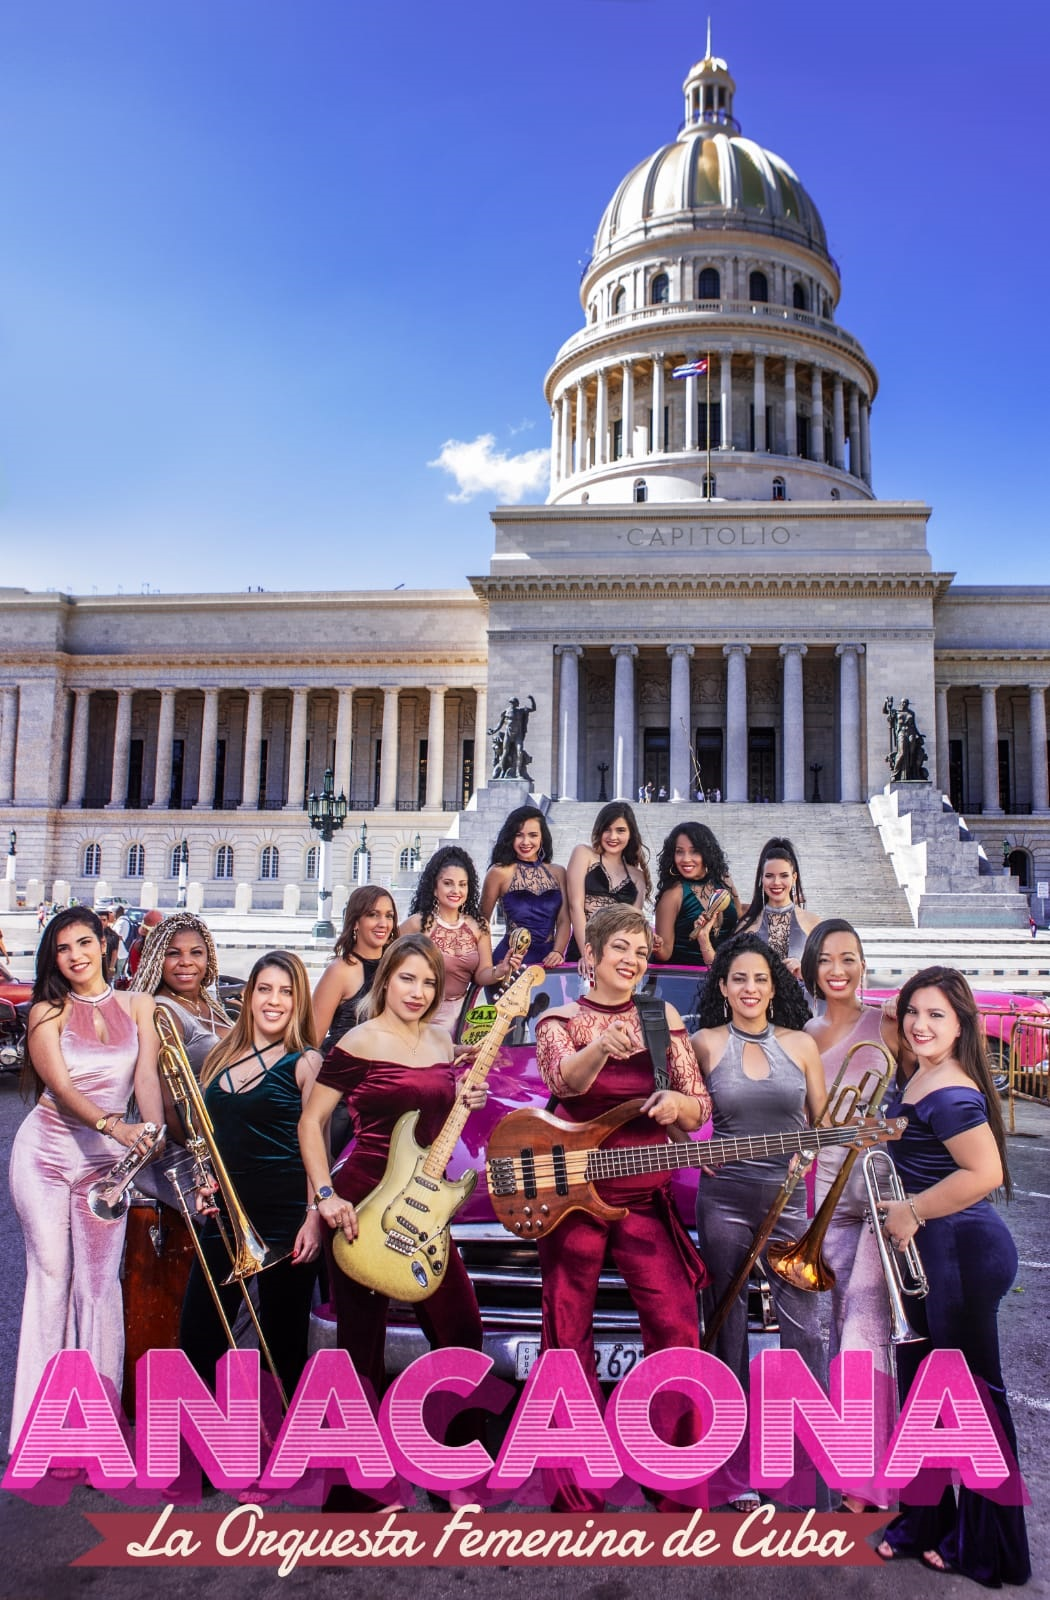 """ANACAONA, with more than 85 years of uninterrupted work, is one of the first level groups of Cuban popular music and is considered """"The Insigne Female Orchestra of Cuba""""."""